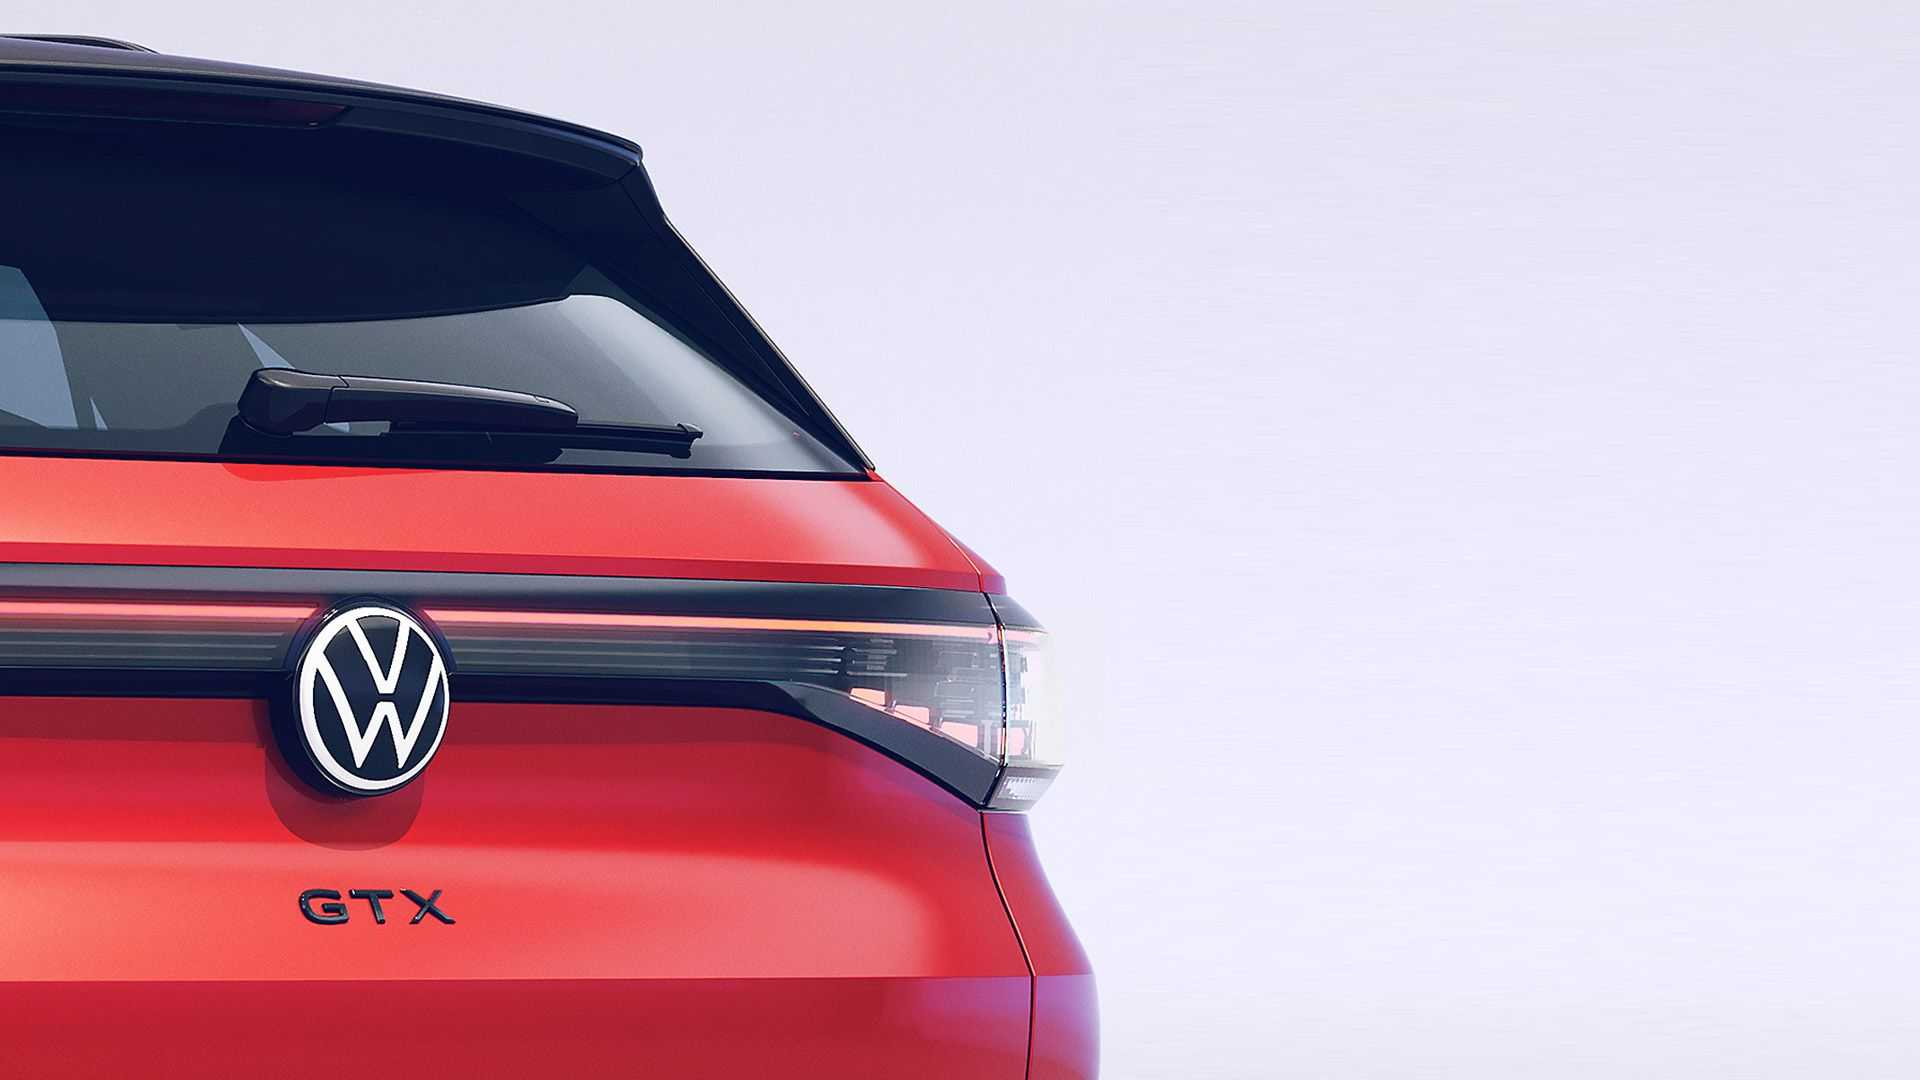 The rear profile of VW ID.4 GTX gets sleek LED taillights connected by a slim LED strip, while the roof spoiler adds sporty vibe.